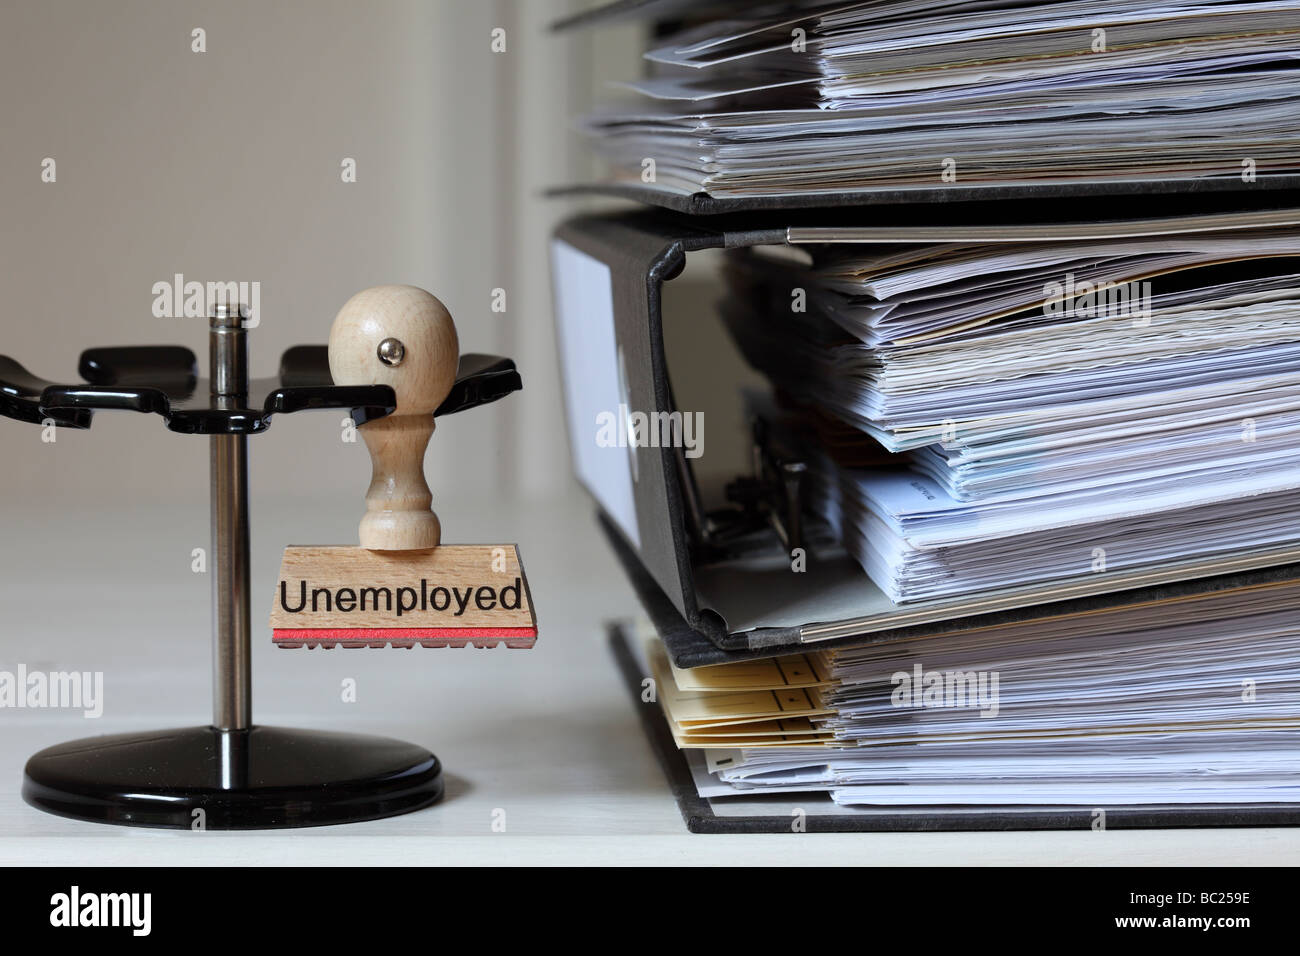 Stamp with inscription Unemployed next to a pile of files - Stock Image